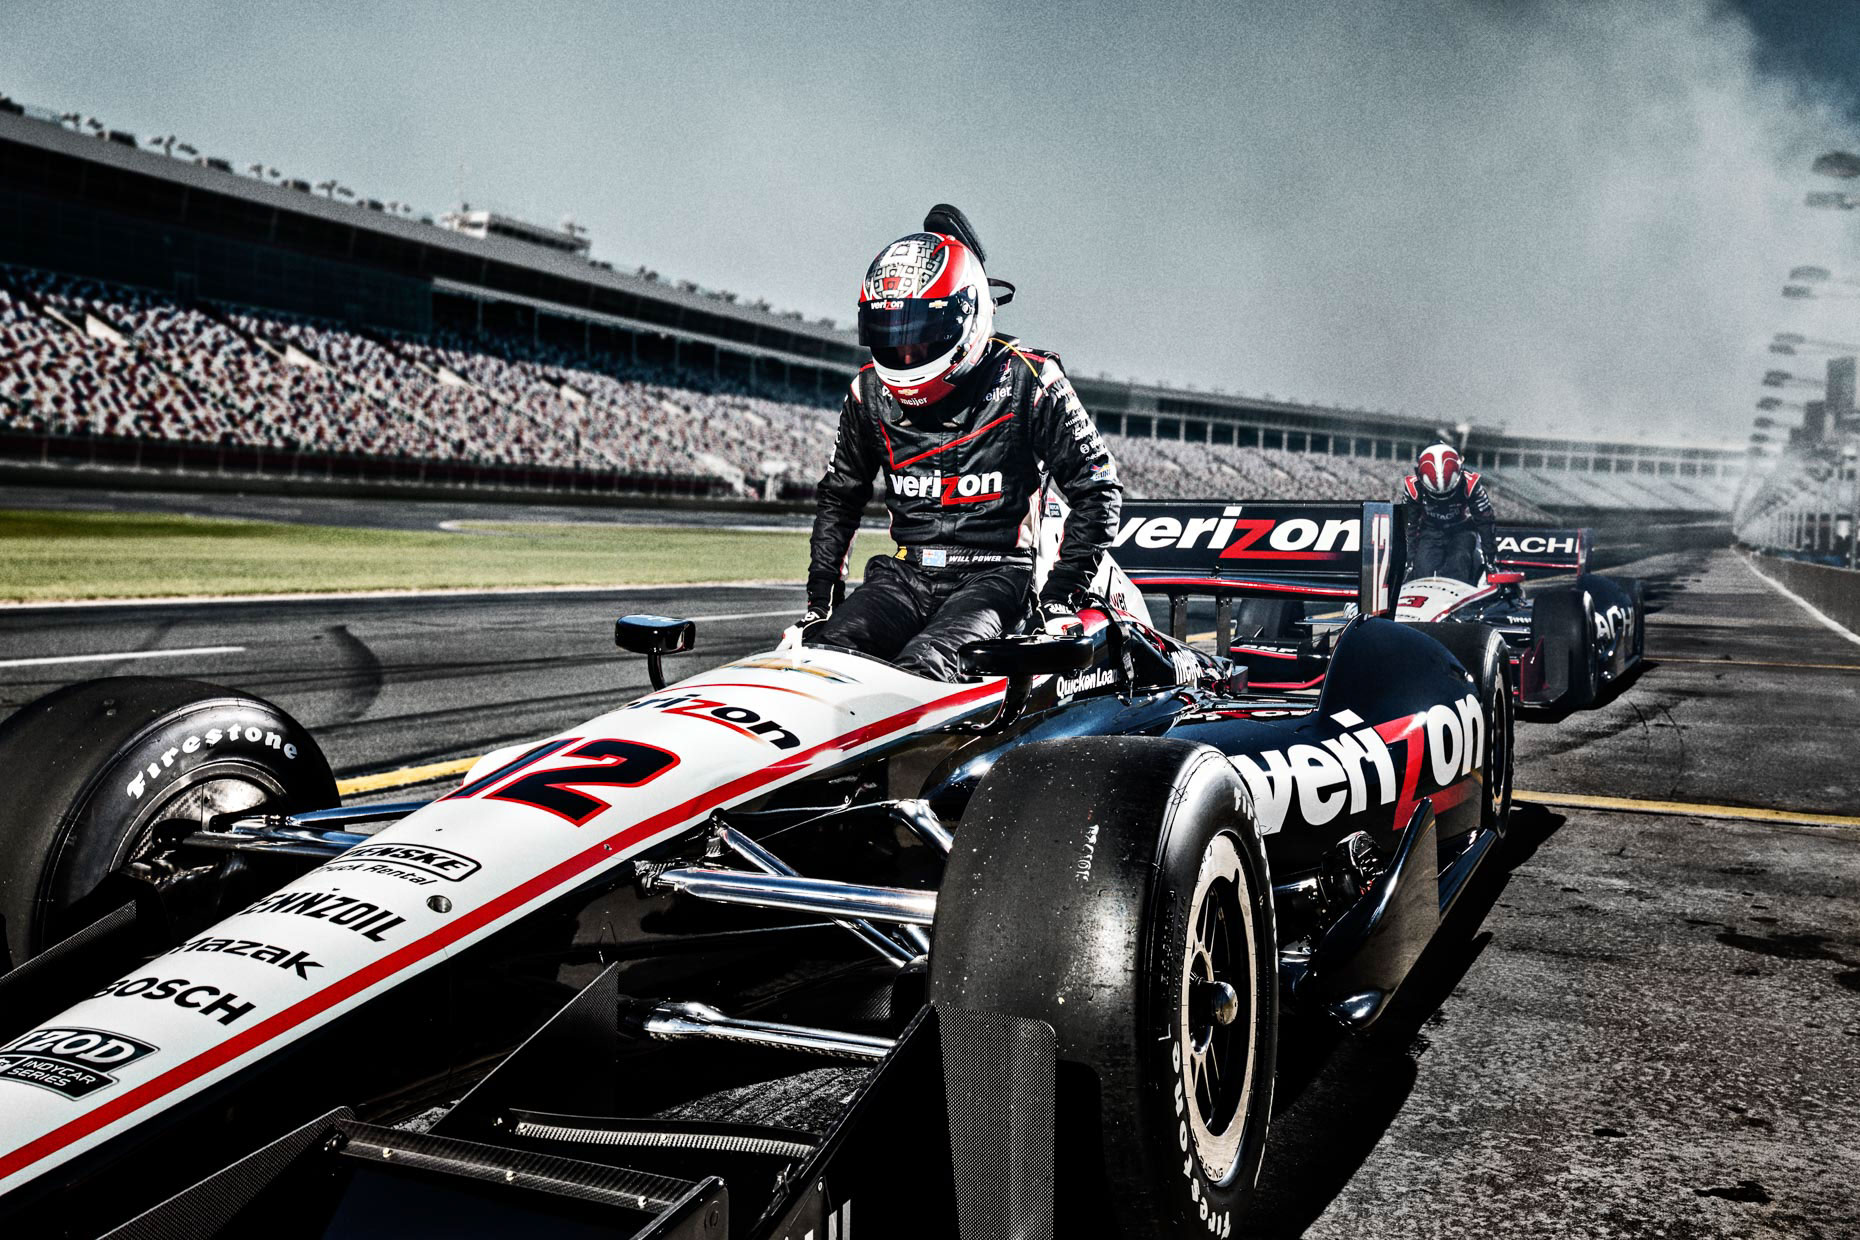 Racecar driver Will Power exits car #12 at pitstop IndyCar Team Penske Charlotte Motor Speedway by Andy Batt